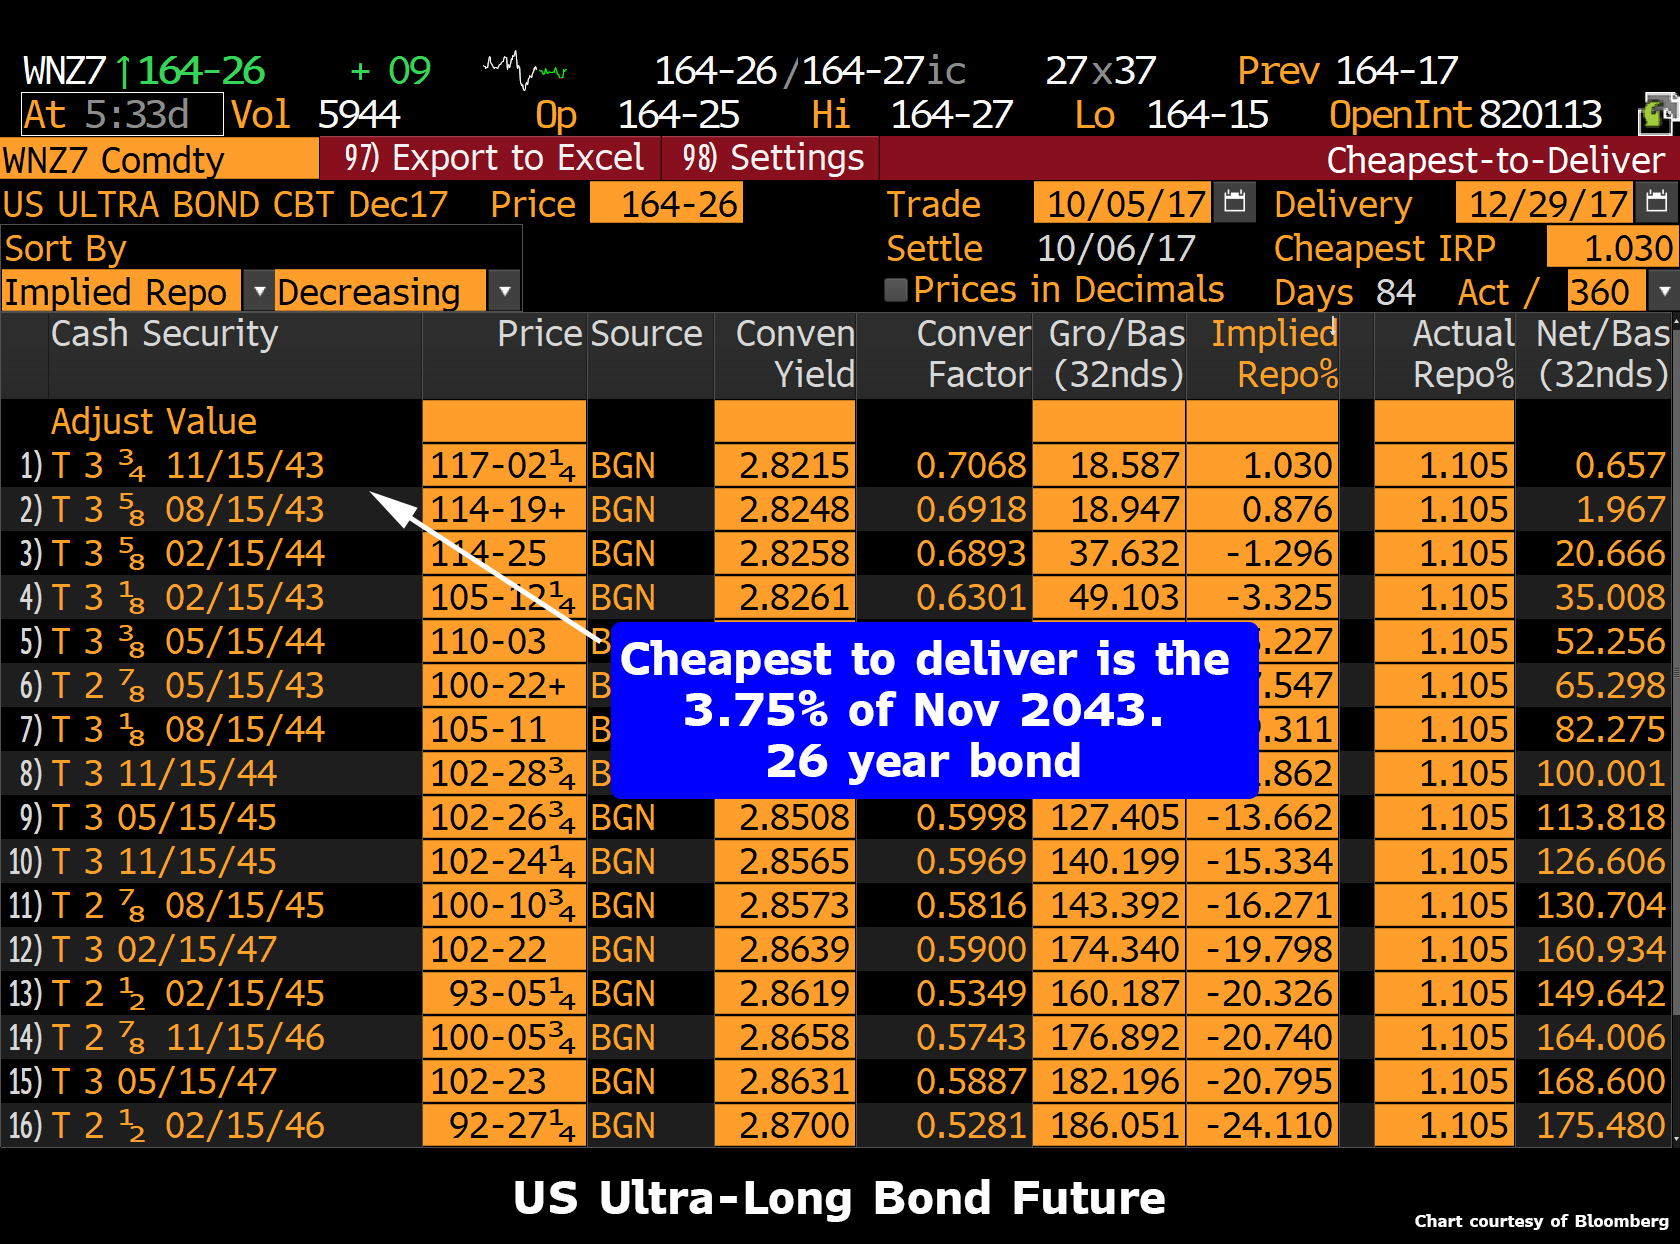 US Ultra-Long Bond Future, Nov 2043 - Feb 2046